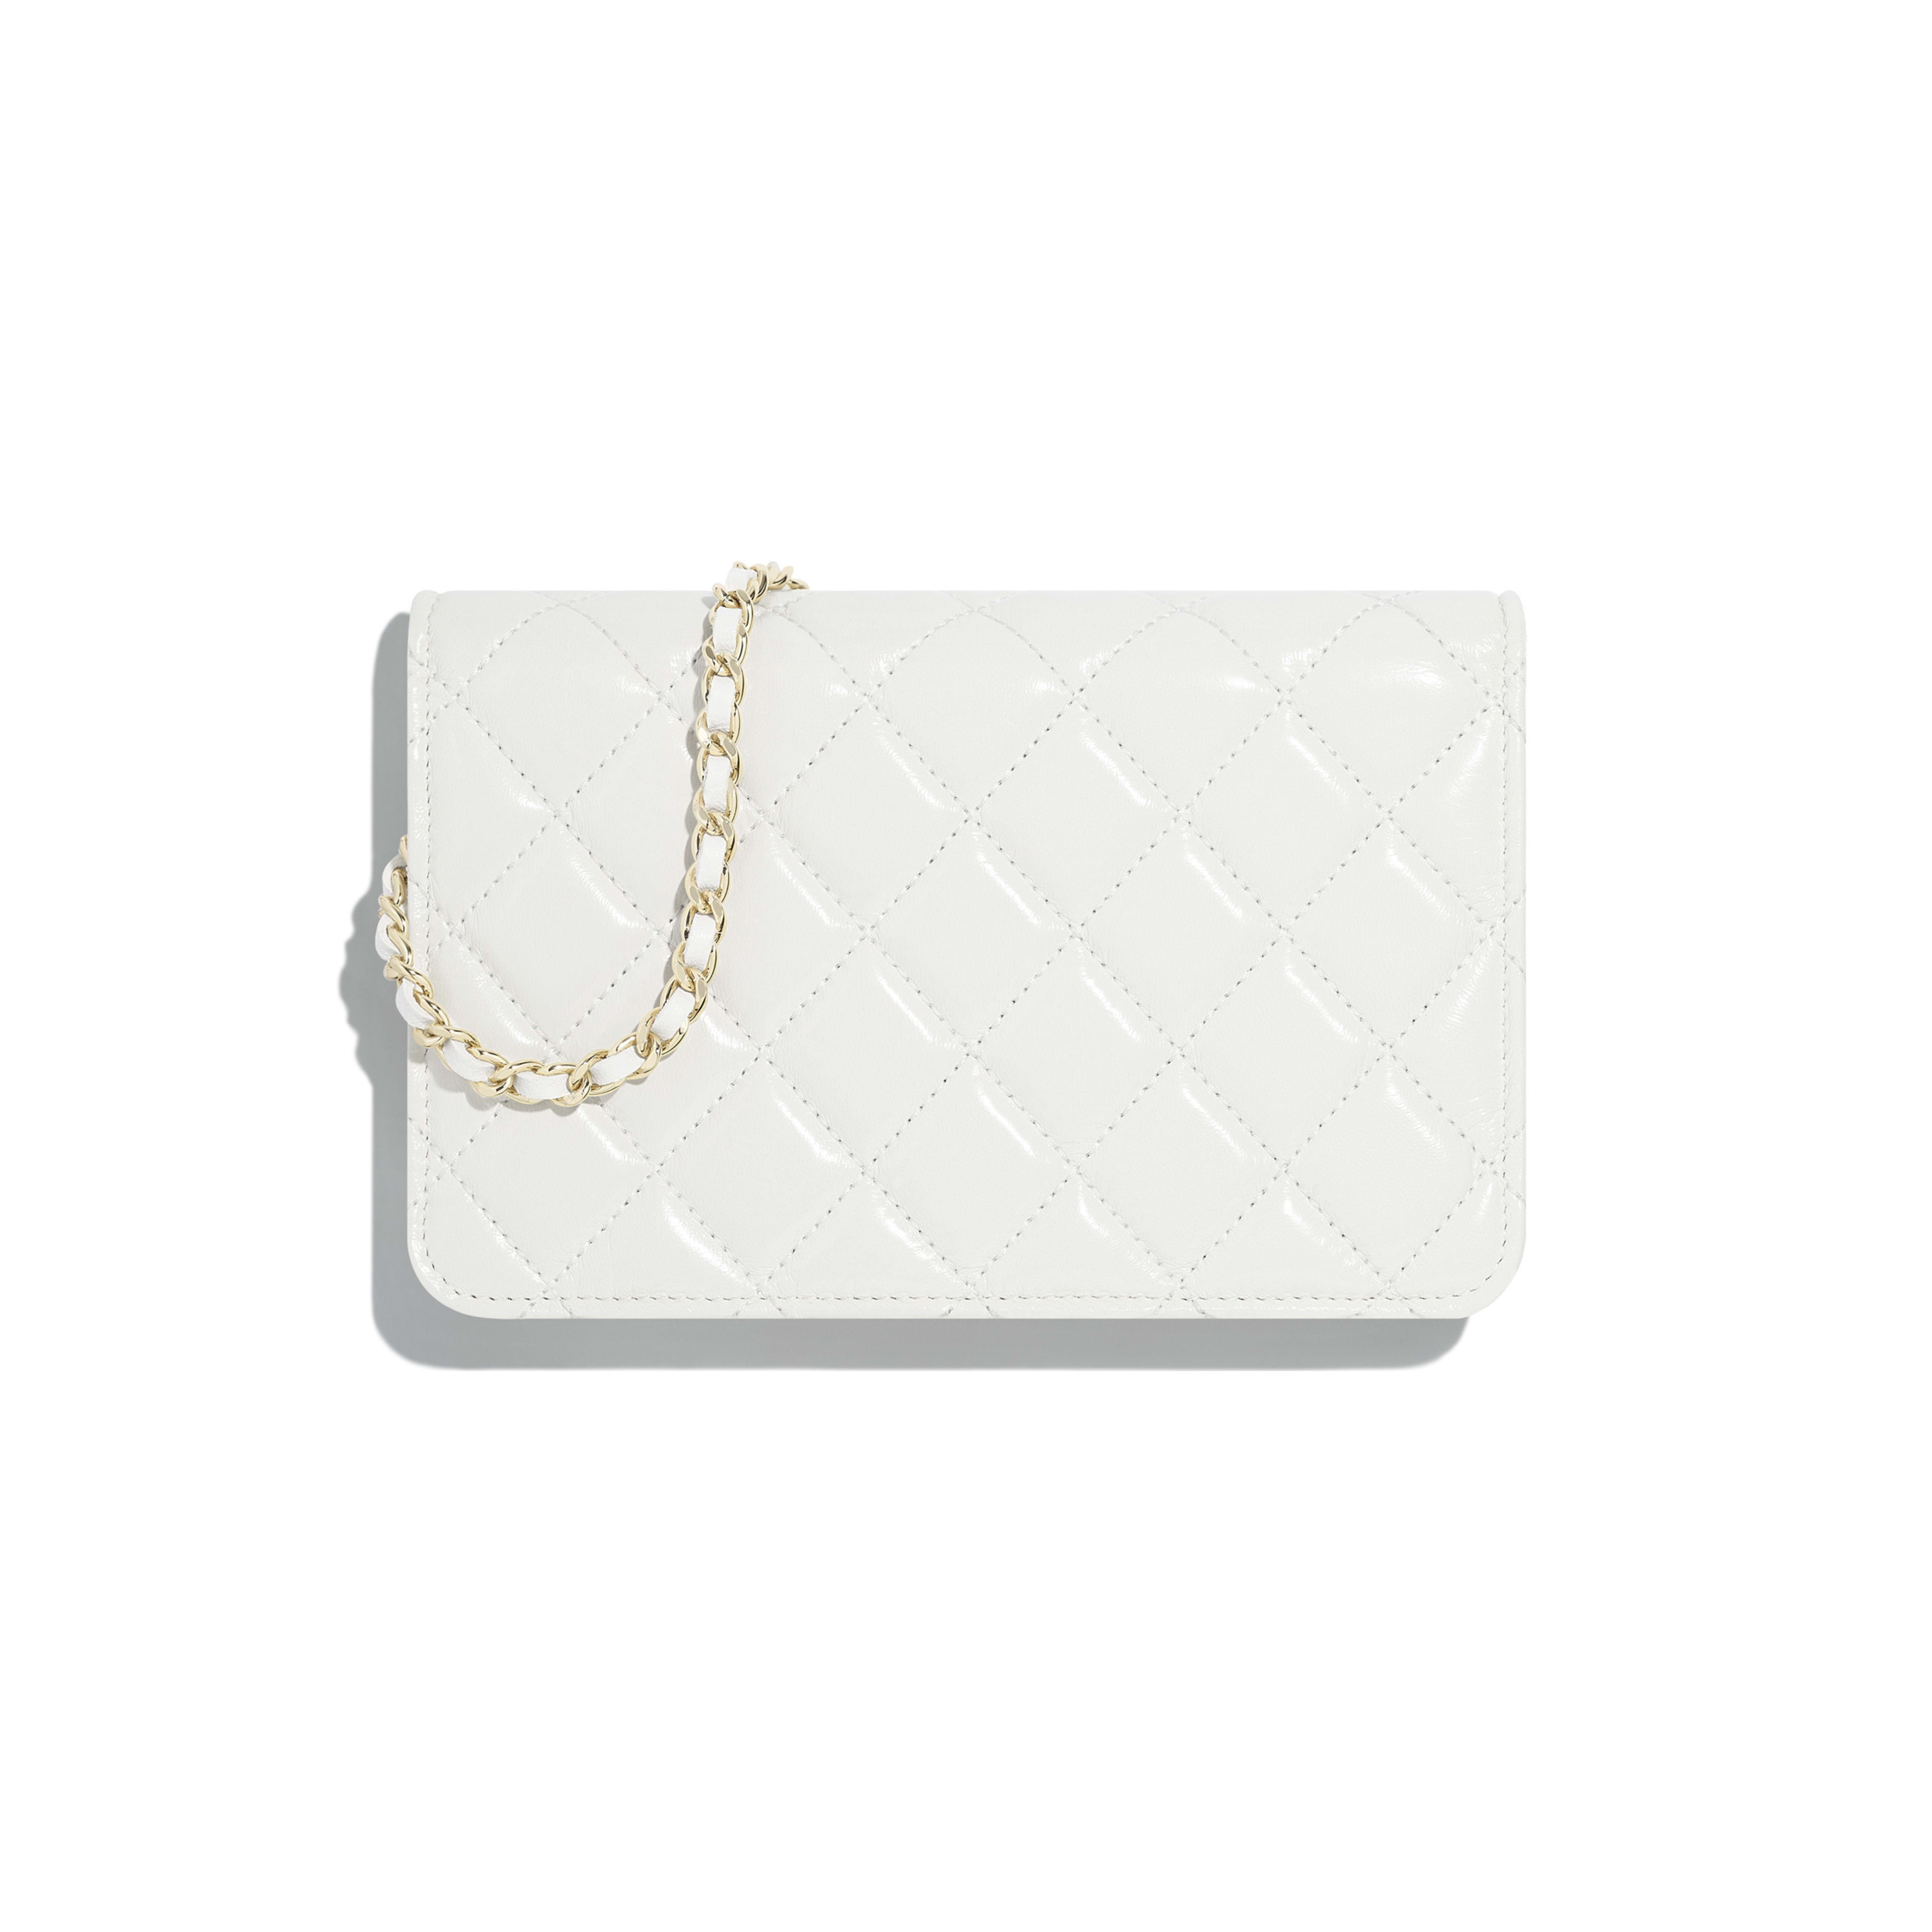 Wallet on Chain - White - Shiny Lambskin & Gold-Tone Metal - Alternative view - see full sized version